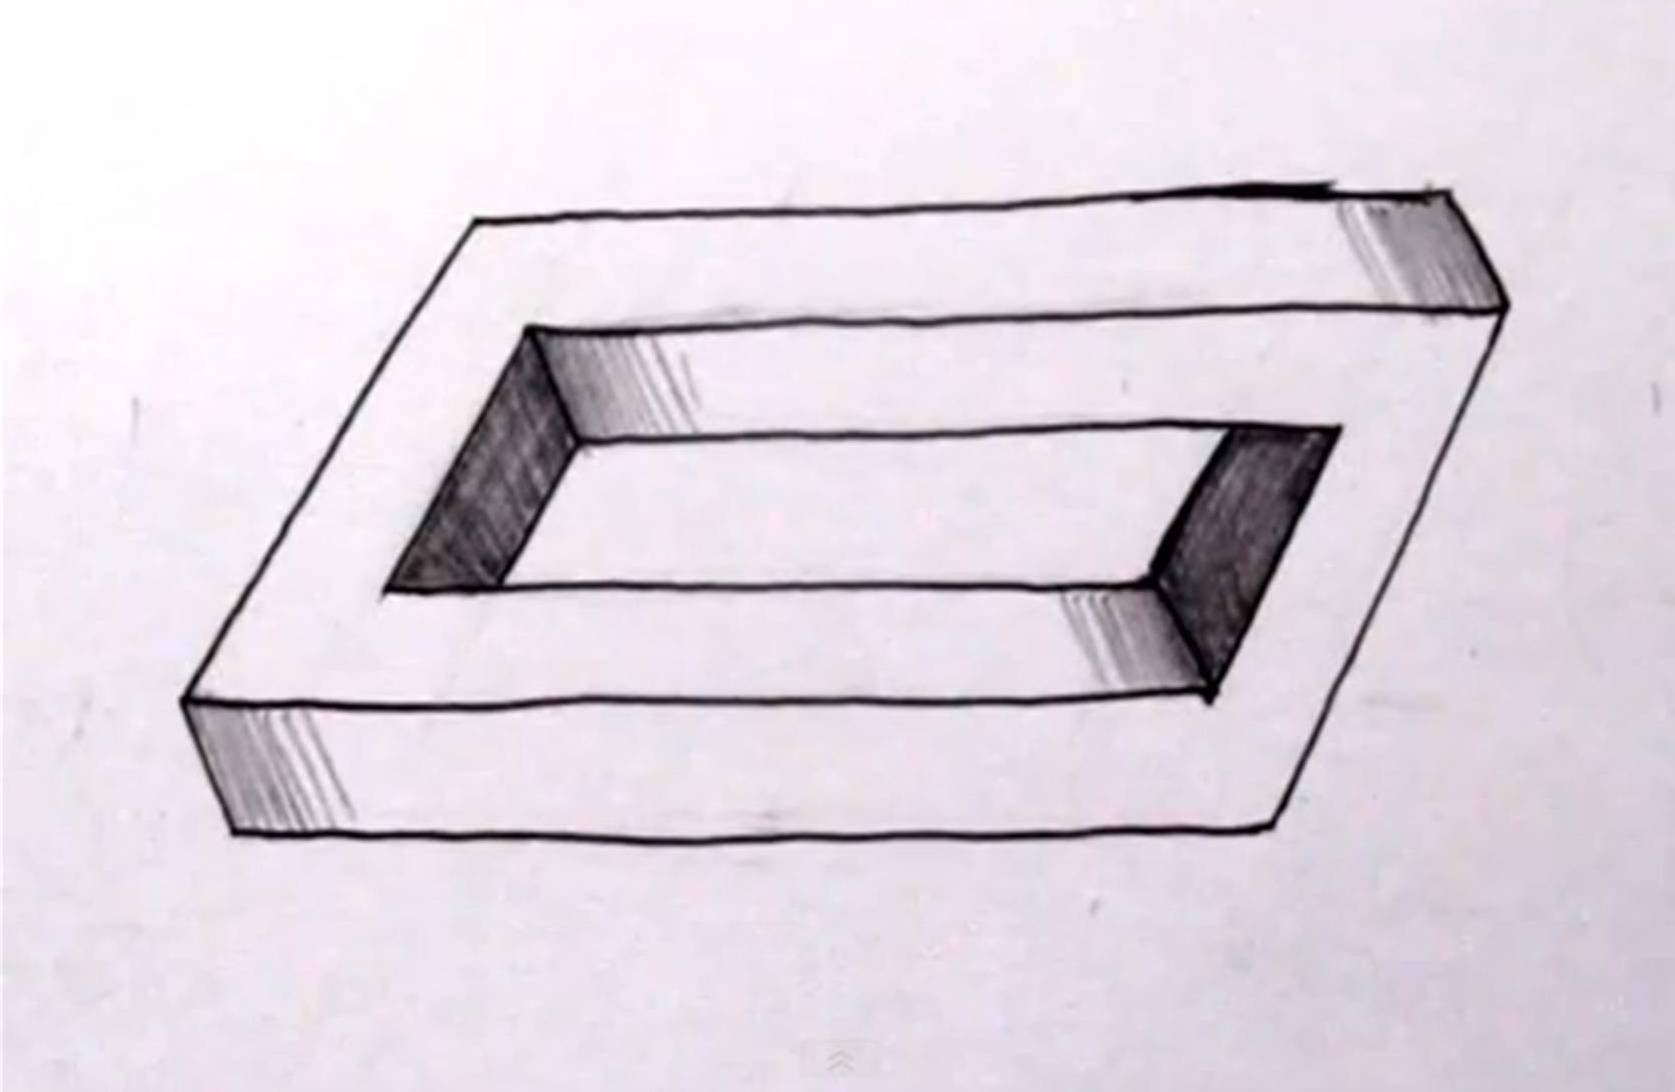 Drawn optical illusion drawable How Cool Optical To Impossible